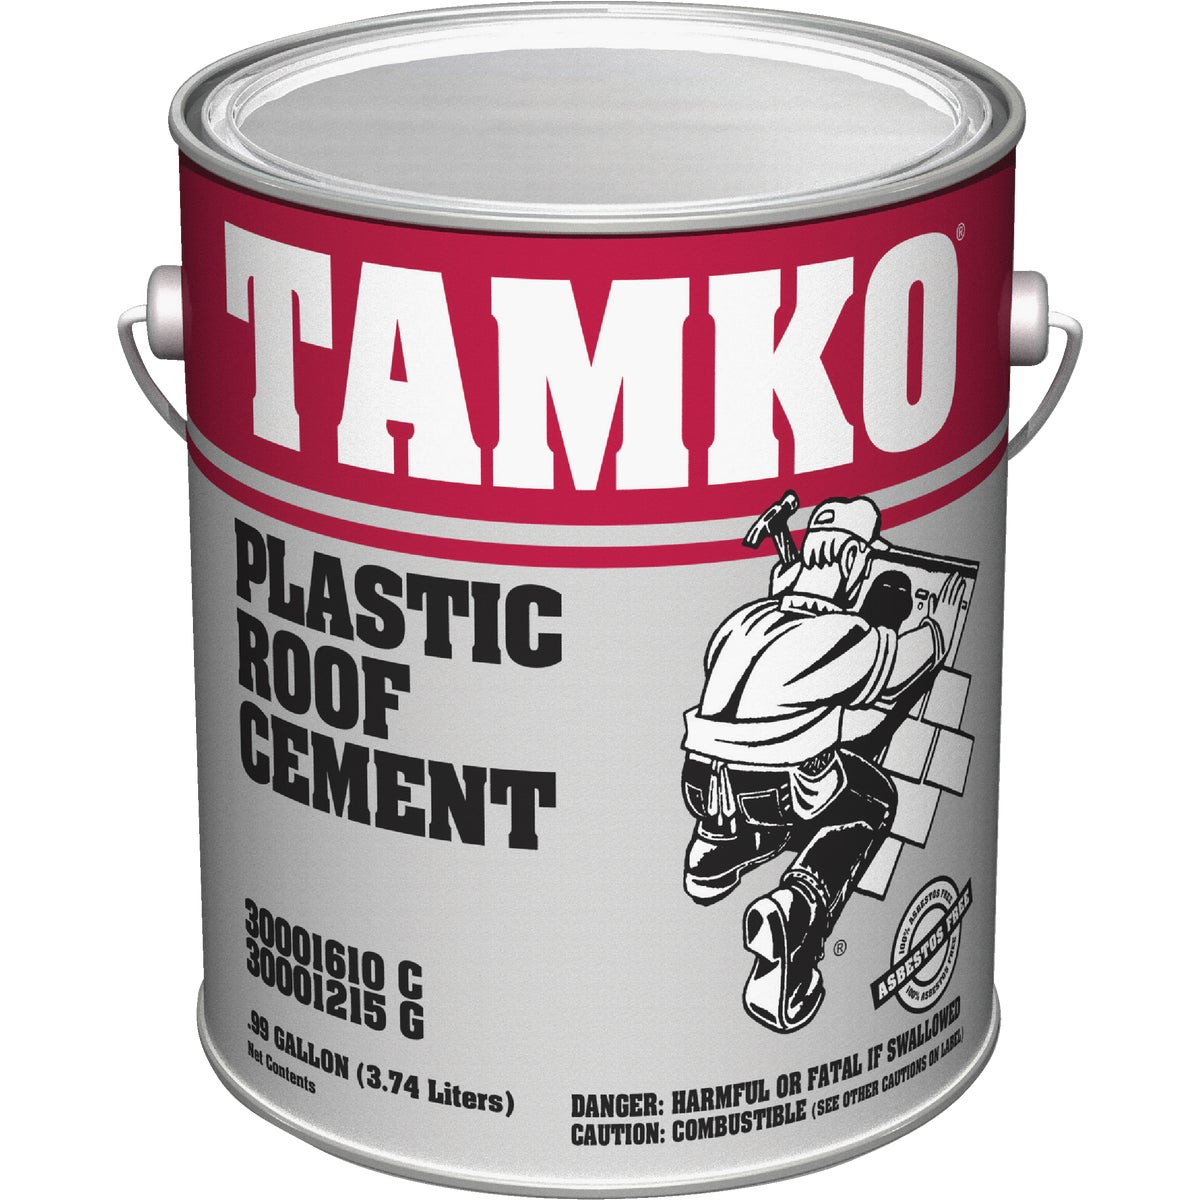 Tamko Building Products Plastic Roof Cement 30001610